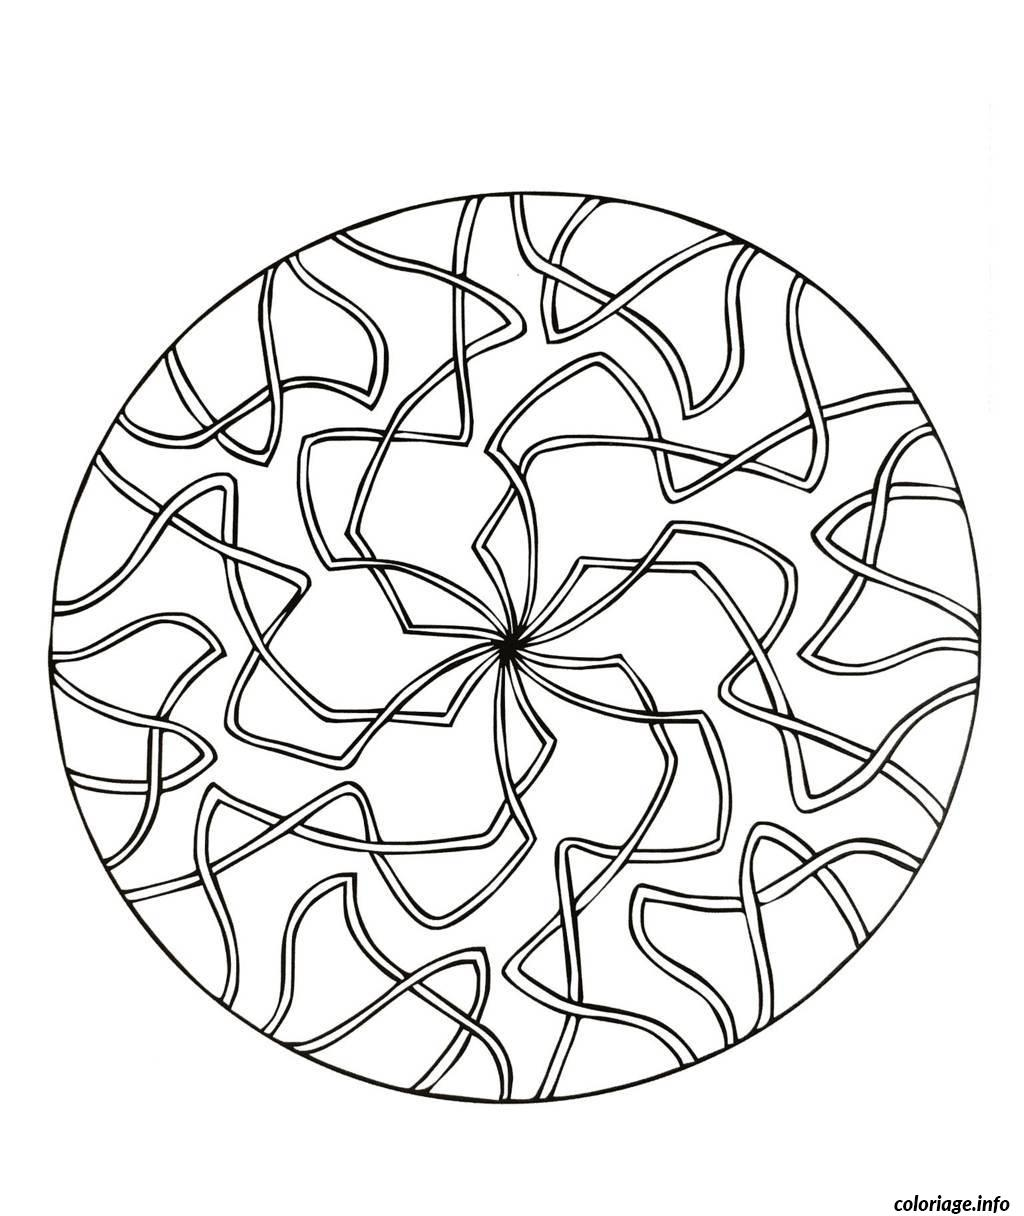 Coloriage mandalas to download for free 15 dessin - Coloriage simple ...